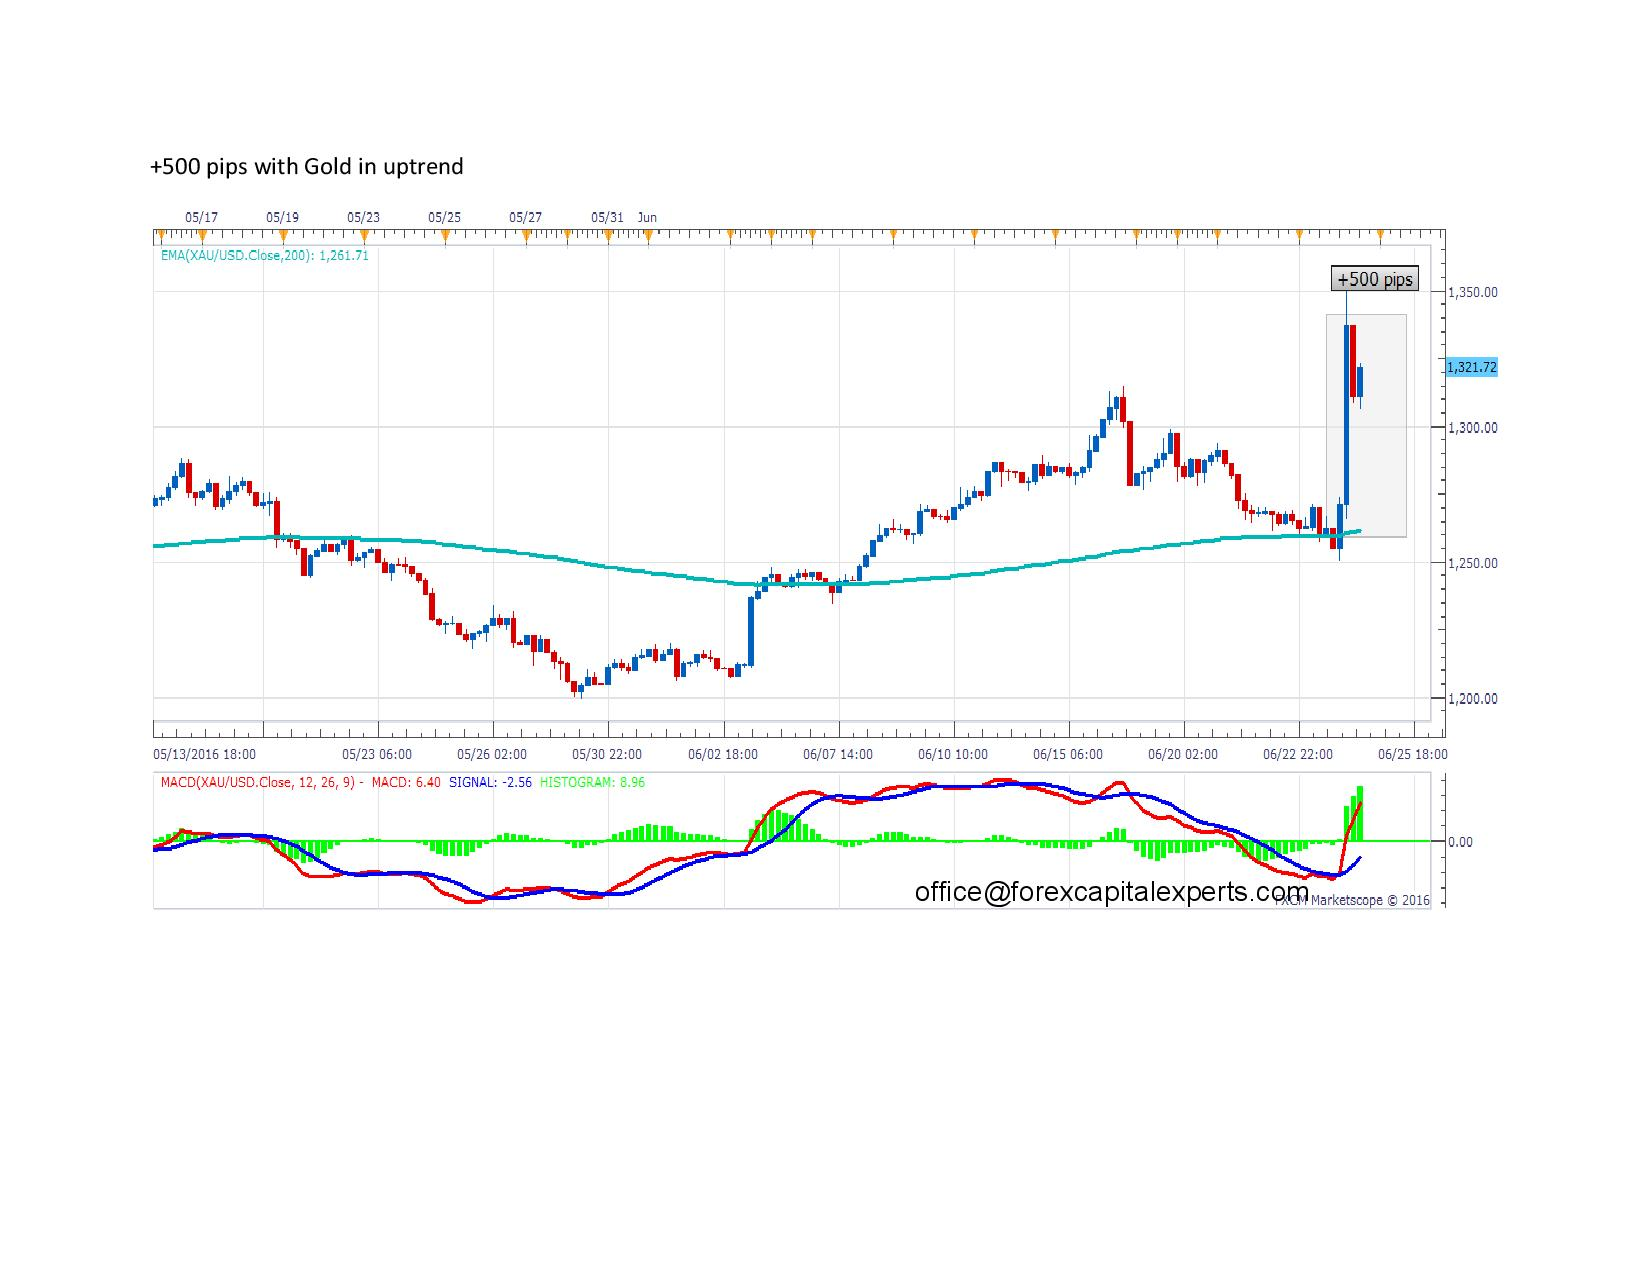 500 pips with Gold in uptrend page 001